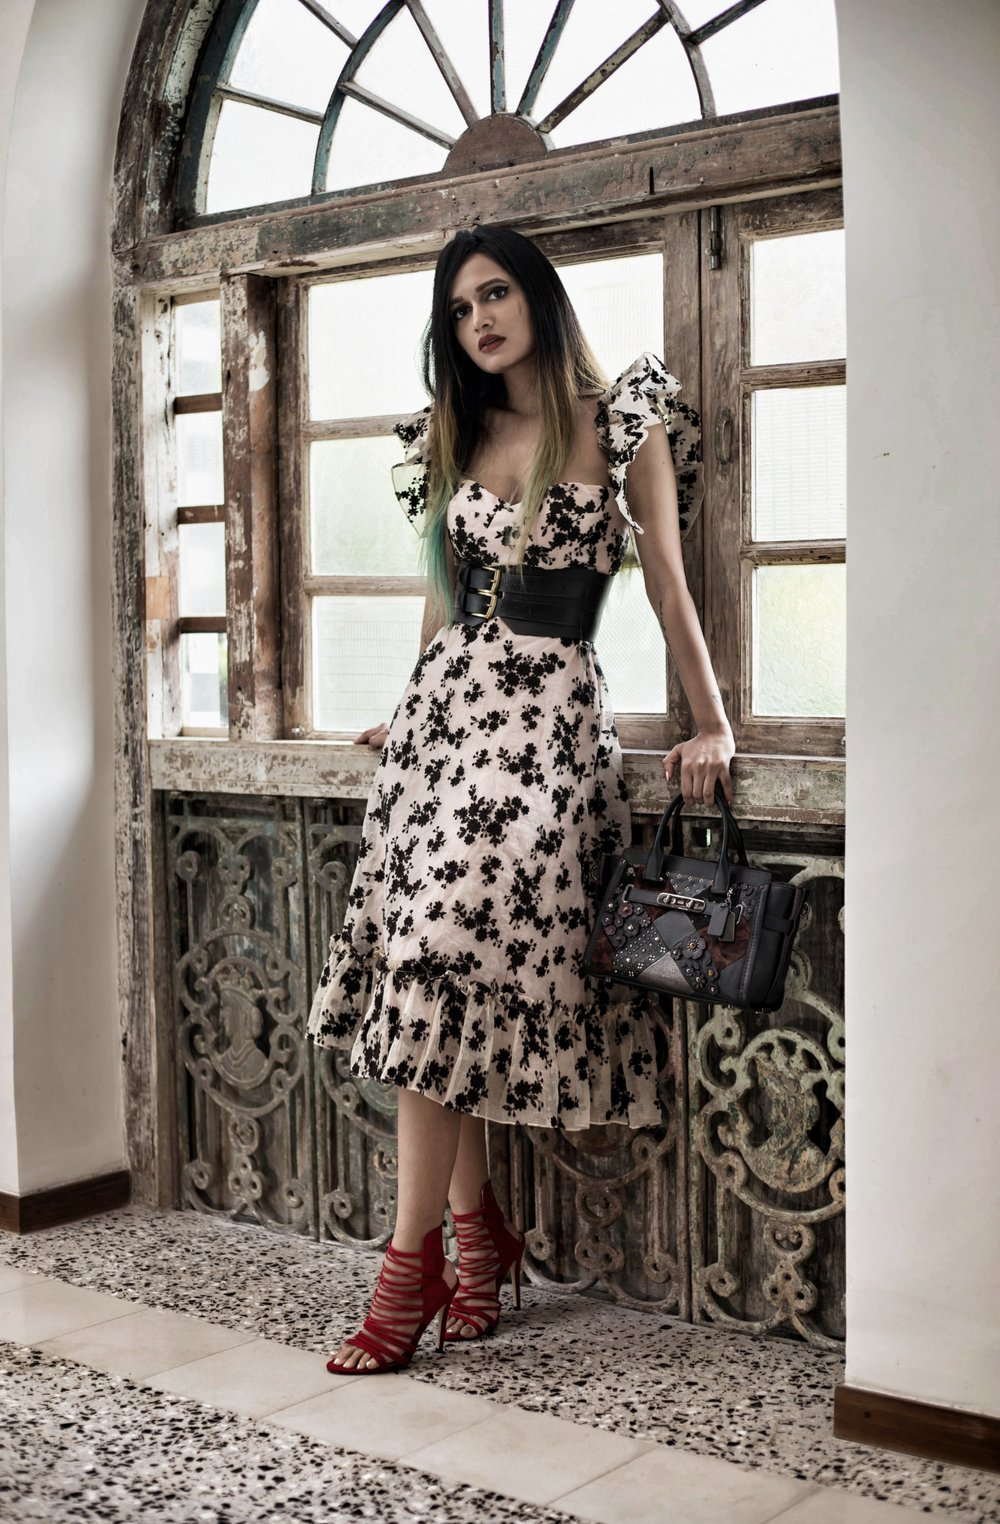 The-Chic-Armoire-by-Nidhi-Kunder-Coach-2